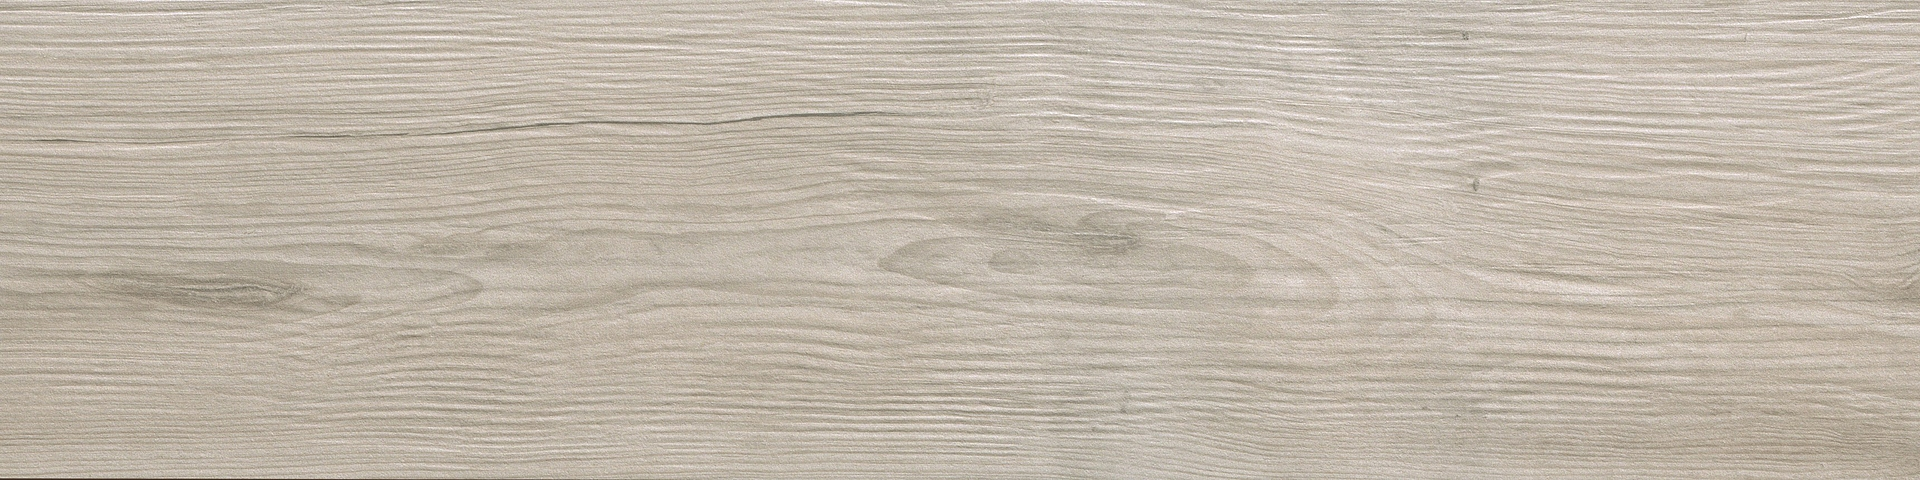 Siam Bluestone Ceramic And Porcelain Tiles By Isla Tiles Tile Expert